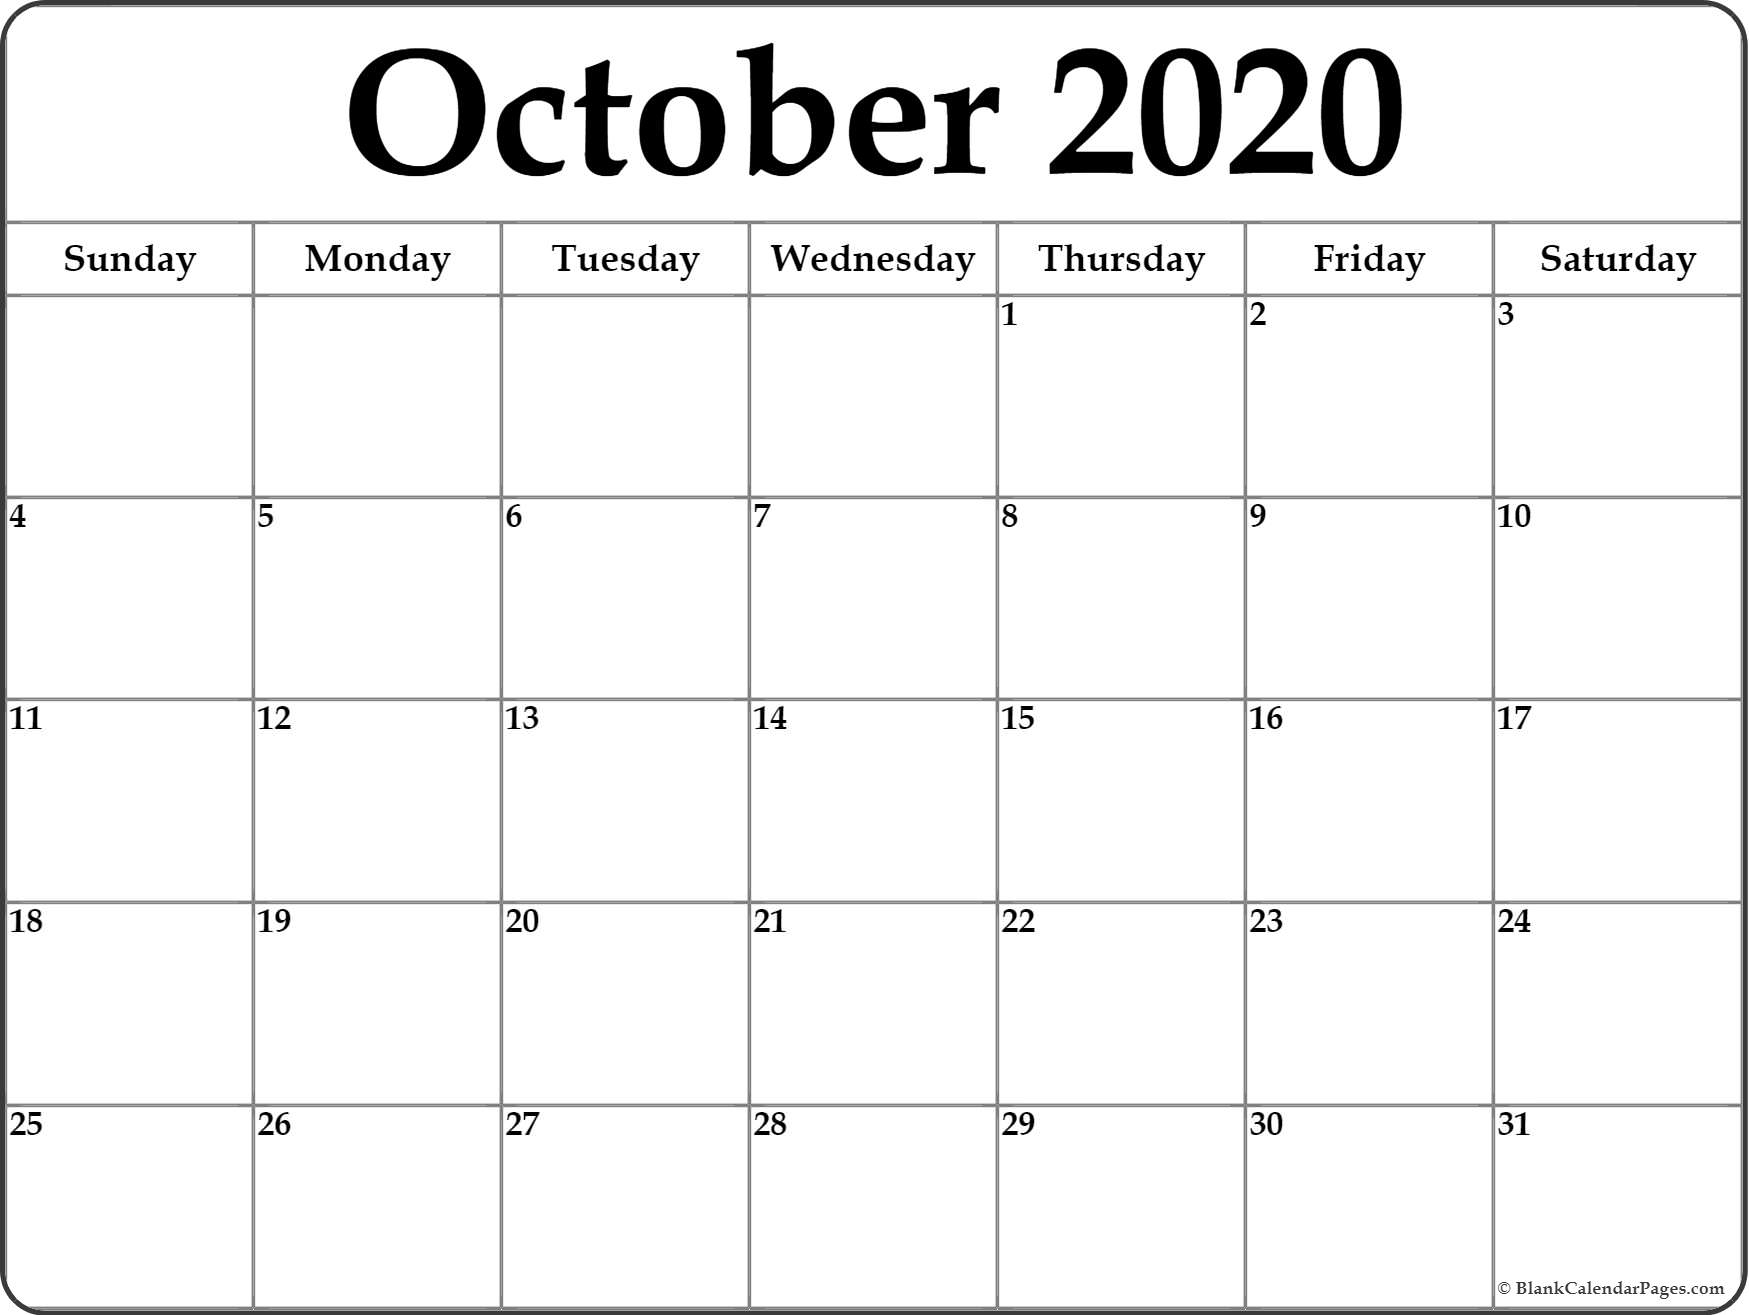 October 2020 Calendar | Free Printable Monthly Calendars intended for Small Monthly Calendar Printable 2020 October